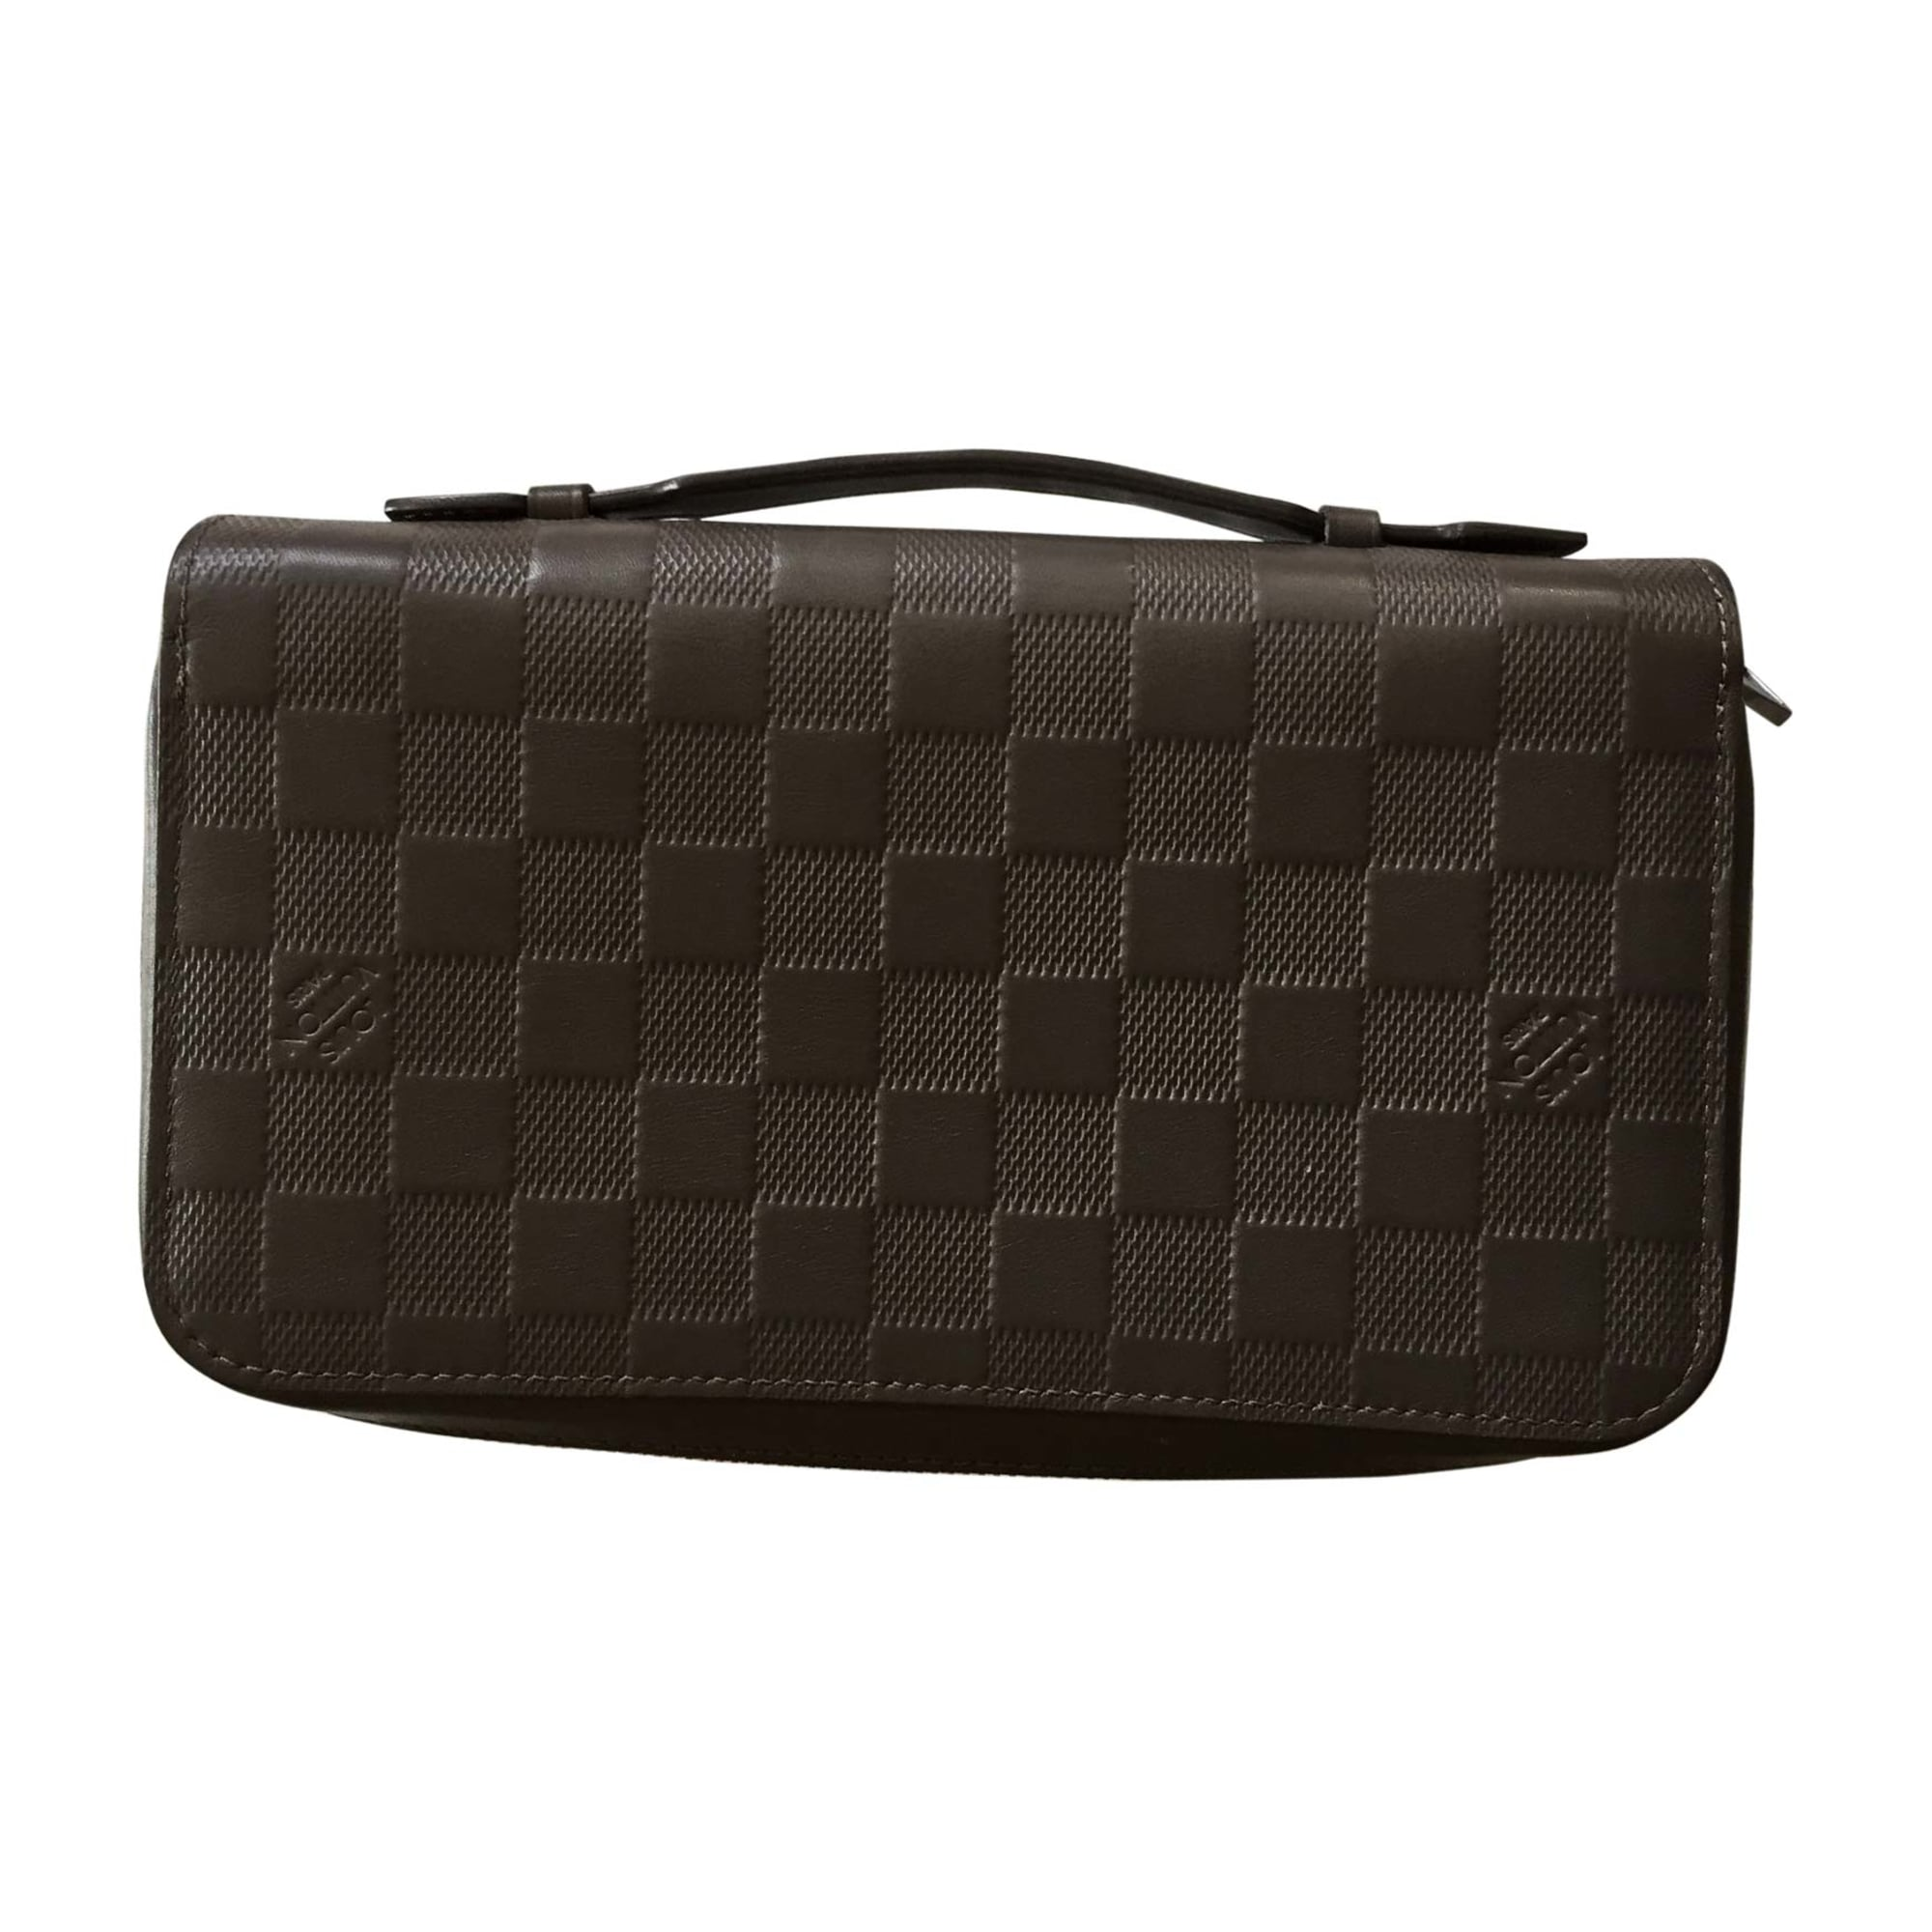 Satchel LOUIS VUITTON Gray, charcoal